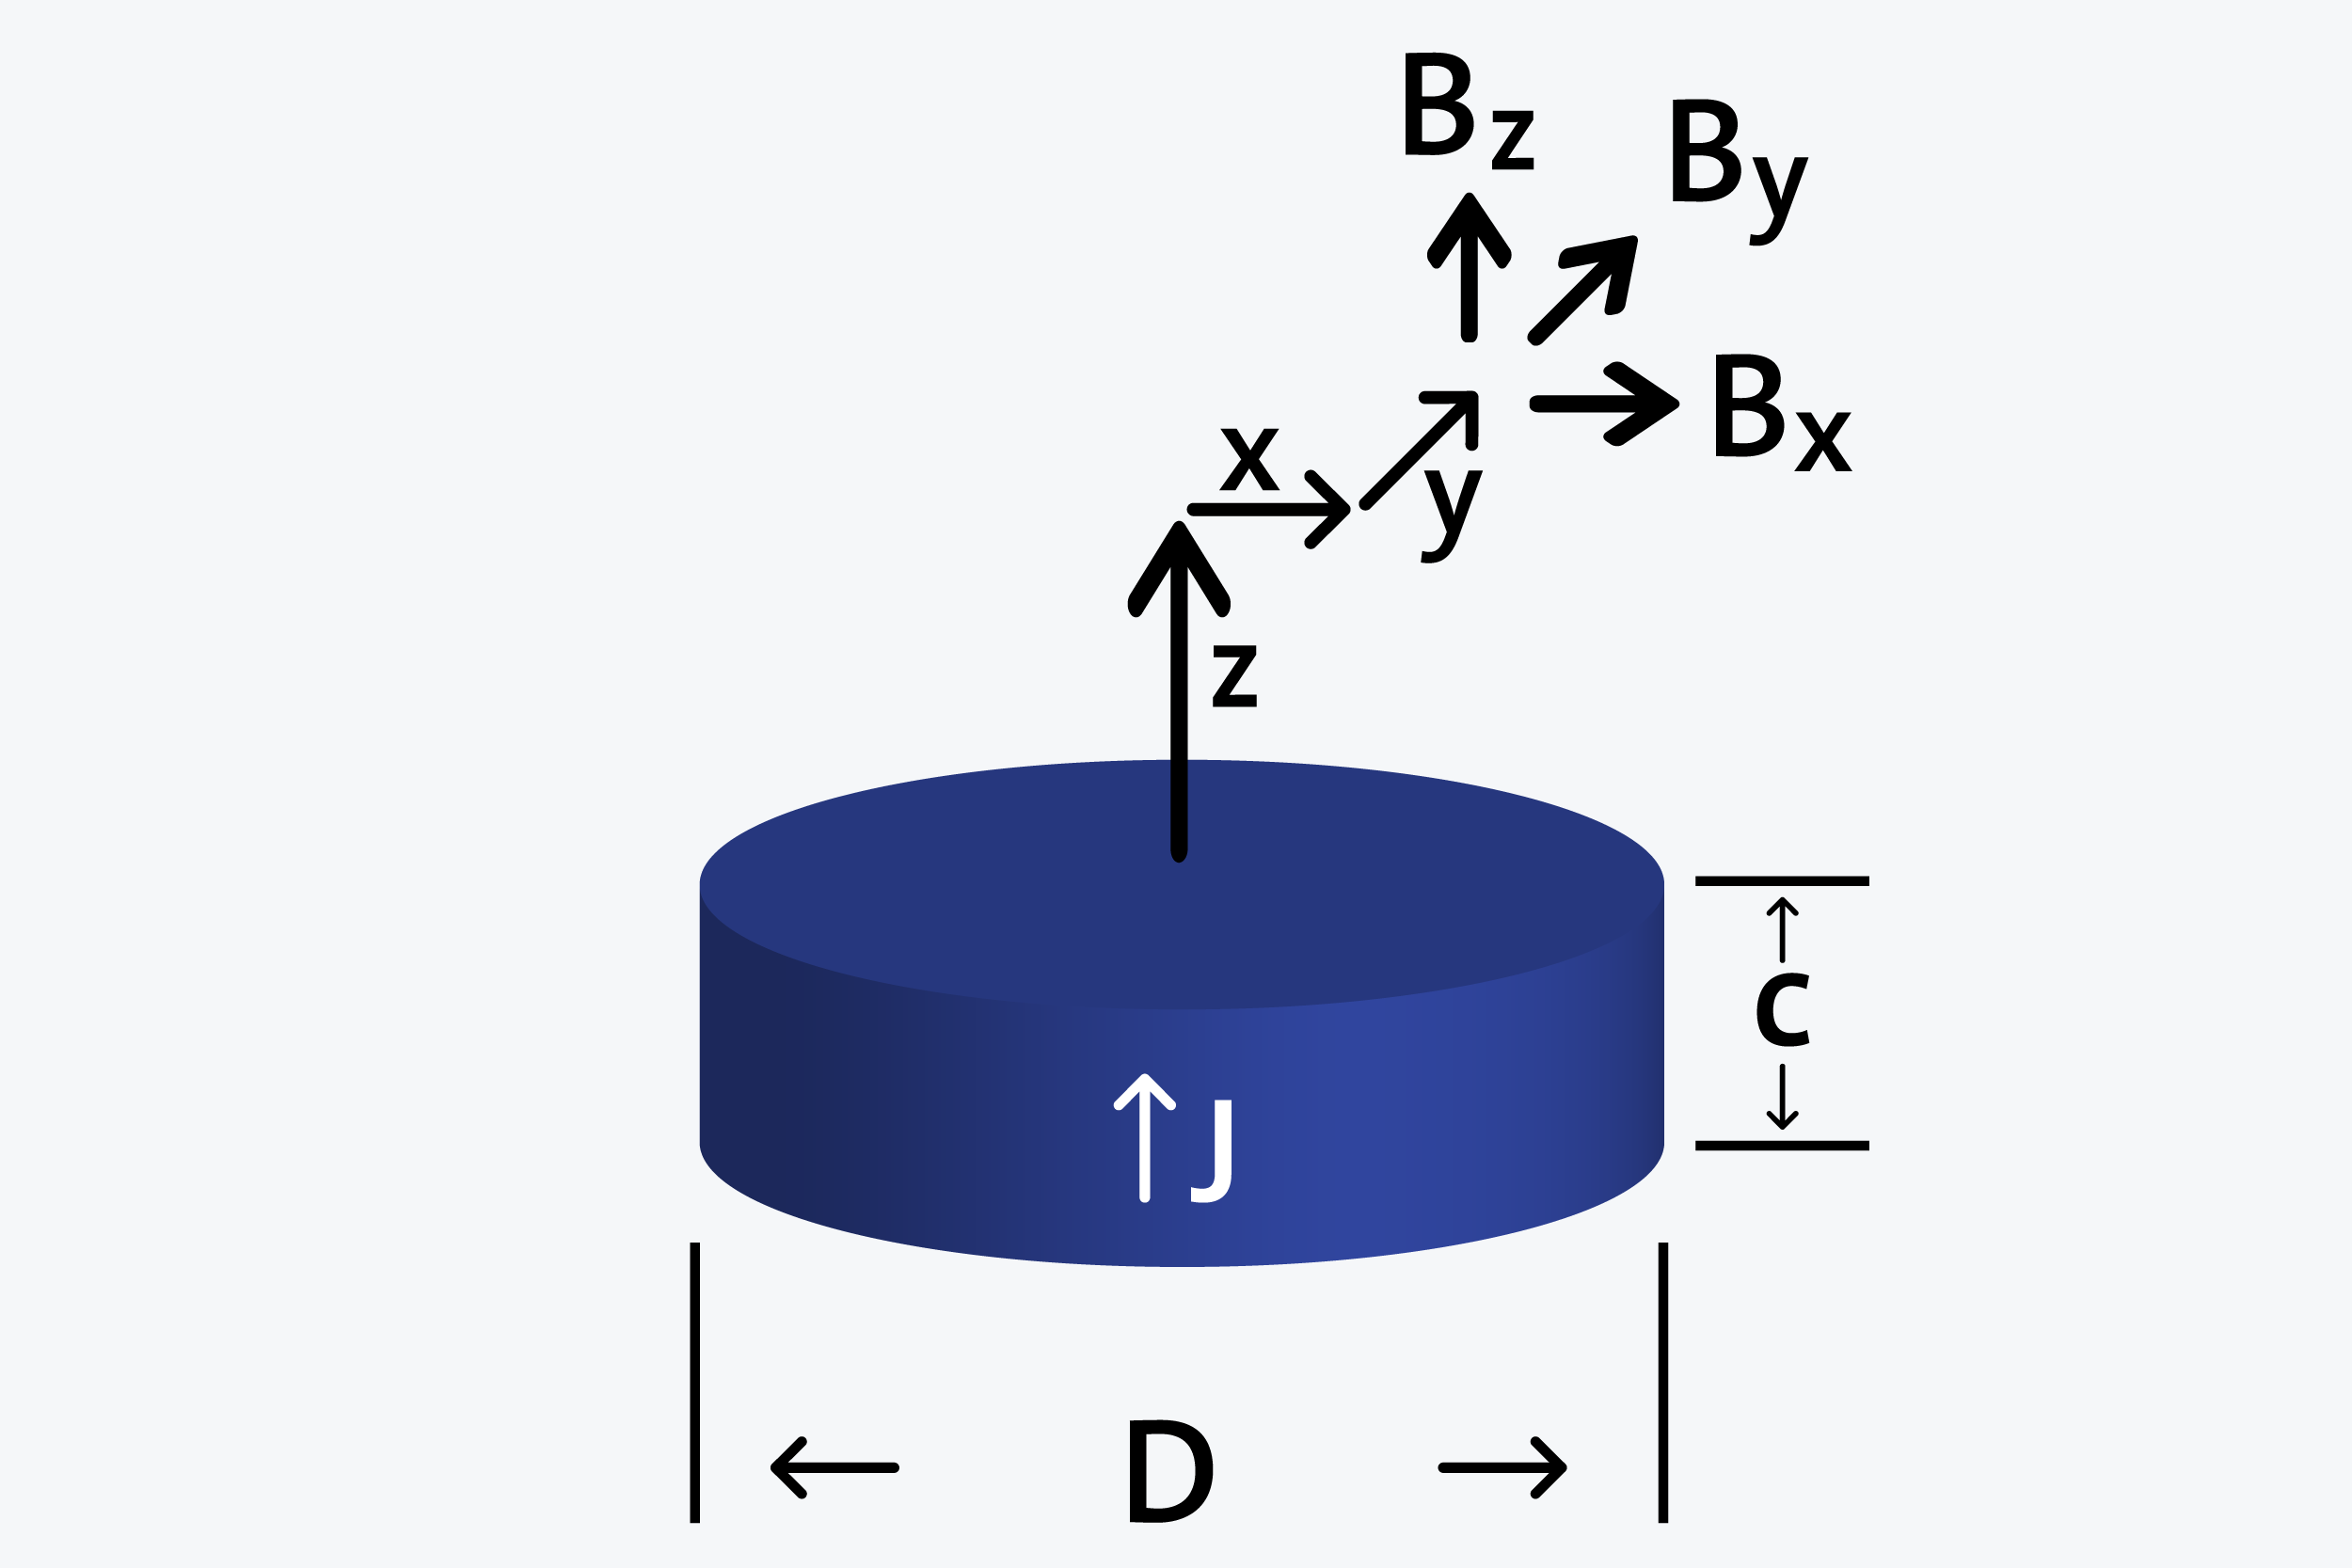 Disk - Axially magnetized